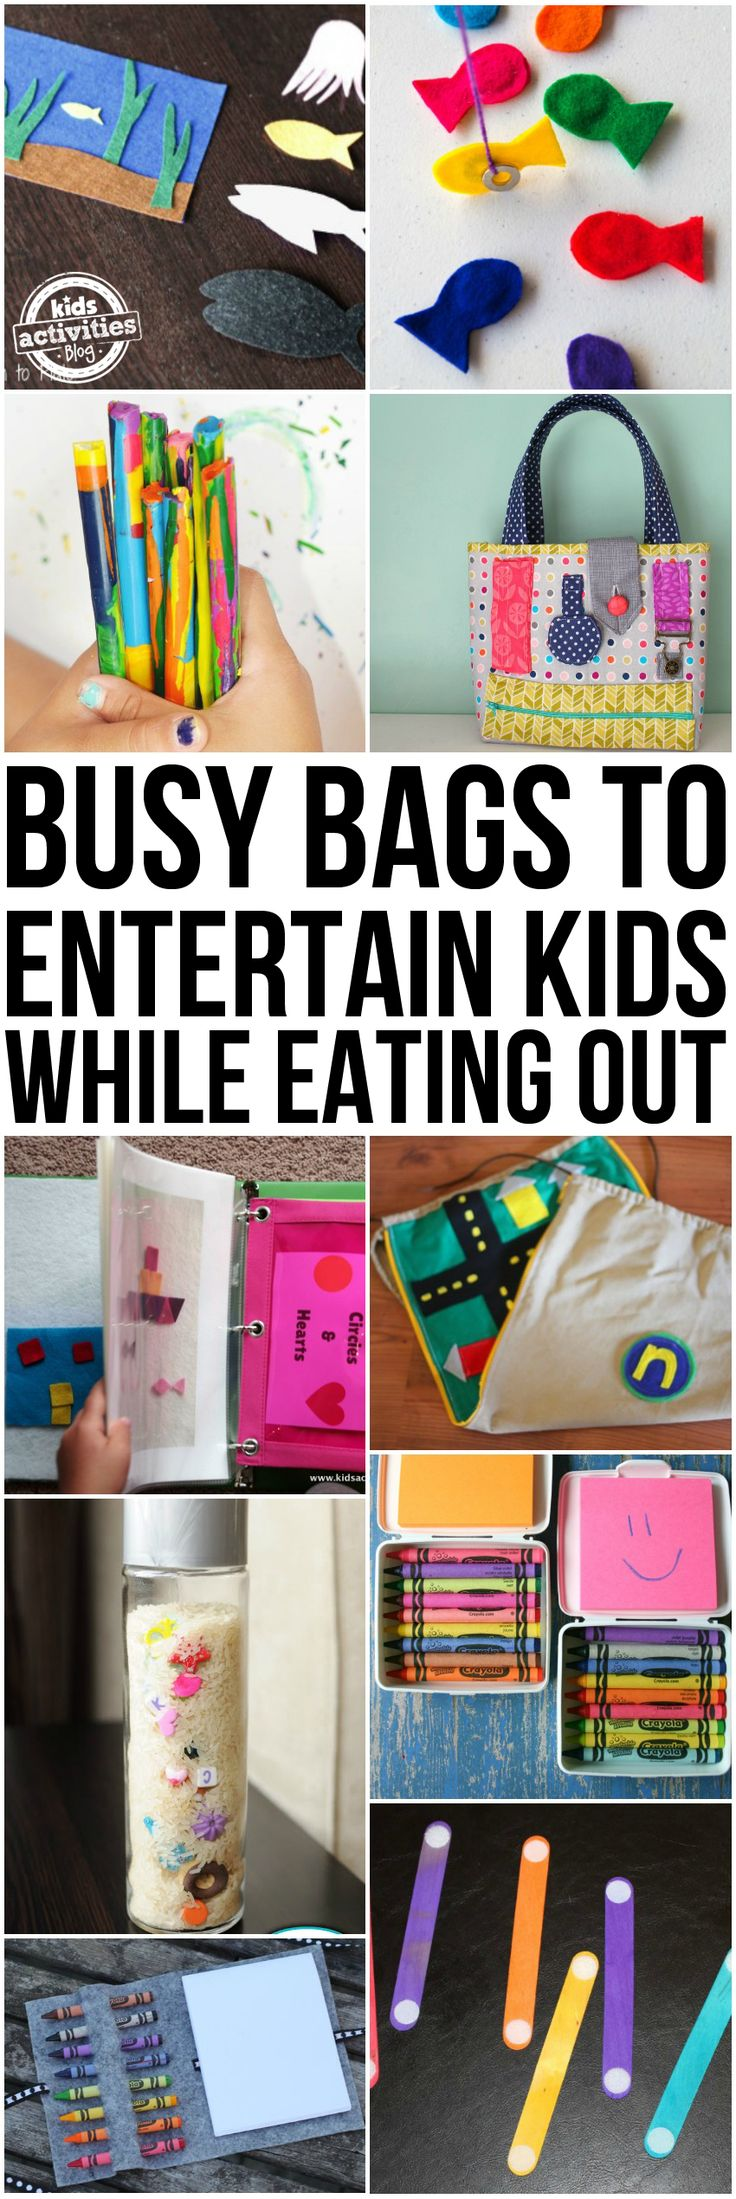 Restaurants and kids don't always mix, but with these awesome ways to keep preschoolers occupied you'll be wanting to eat out regularly!   via @hollyhomer